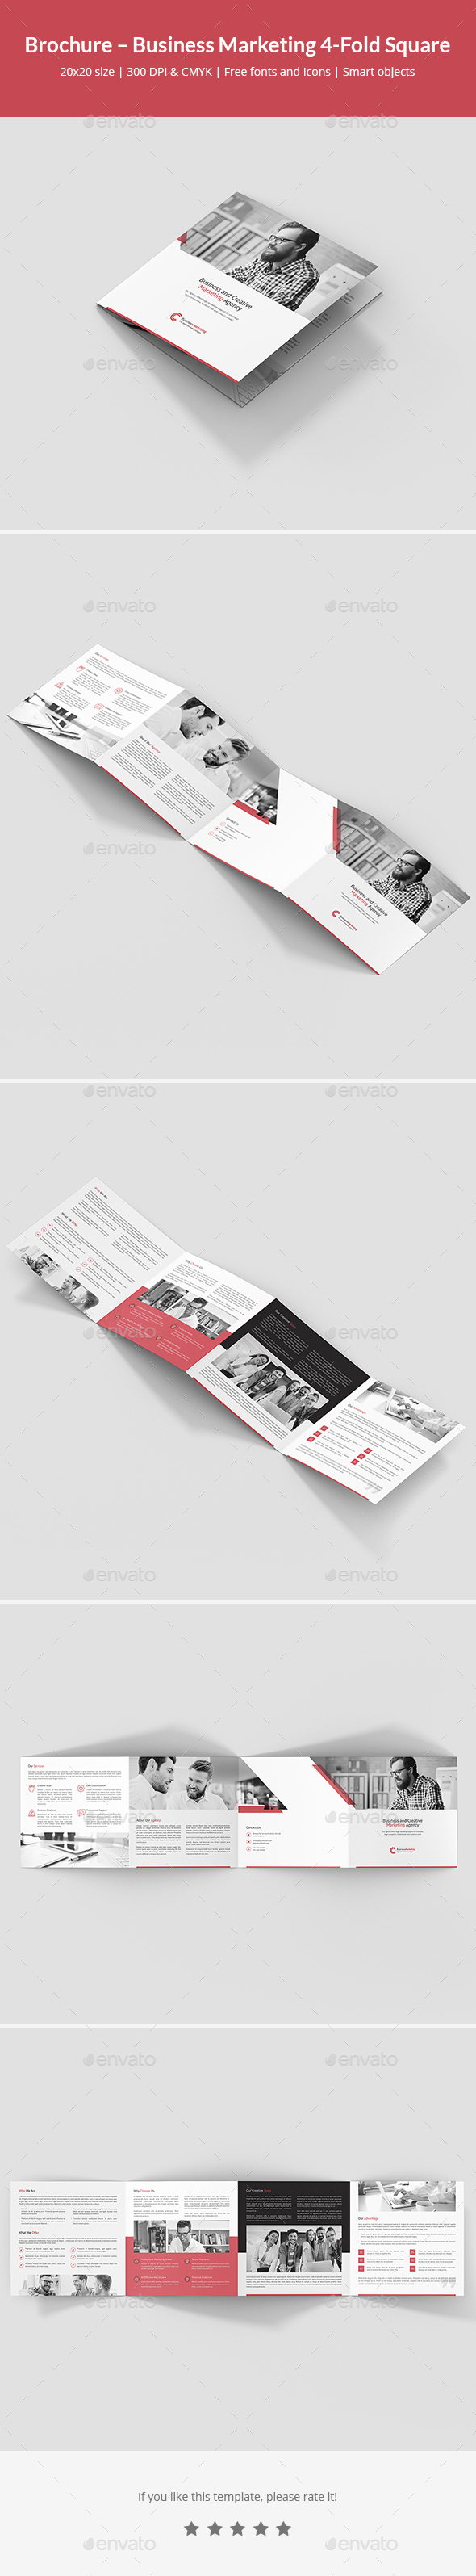 Brochure – Business Marketing 4-Fold Square - Corporate Brochures